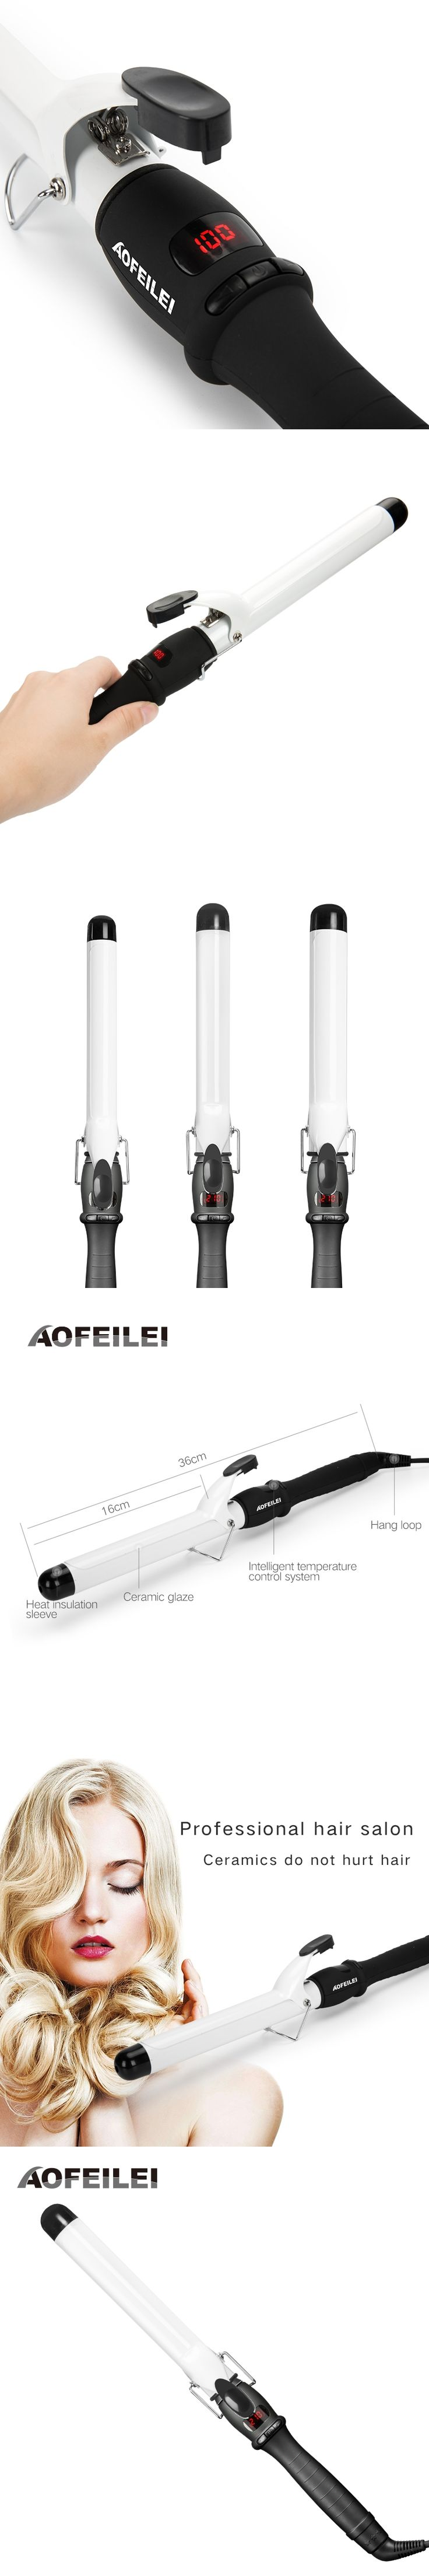 2017 New Rushed Professional Hair Curling Iron Ceramic Electric Curler Waver Curlers Rollers Wand Aofeilei Styler Styling Tools